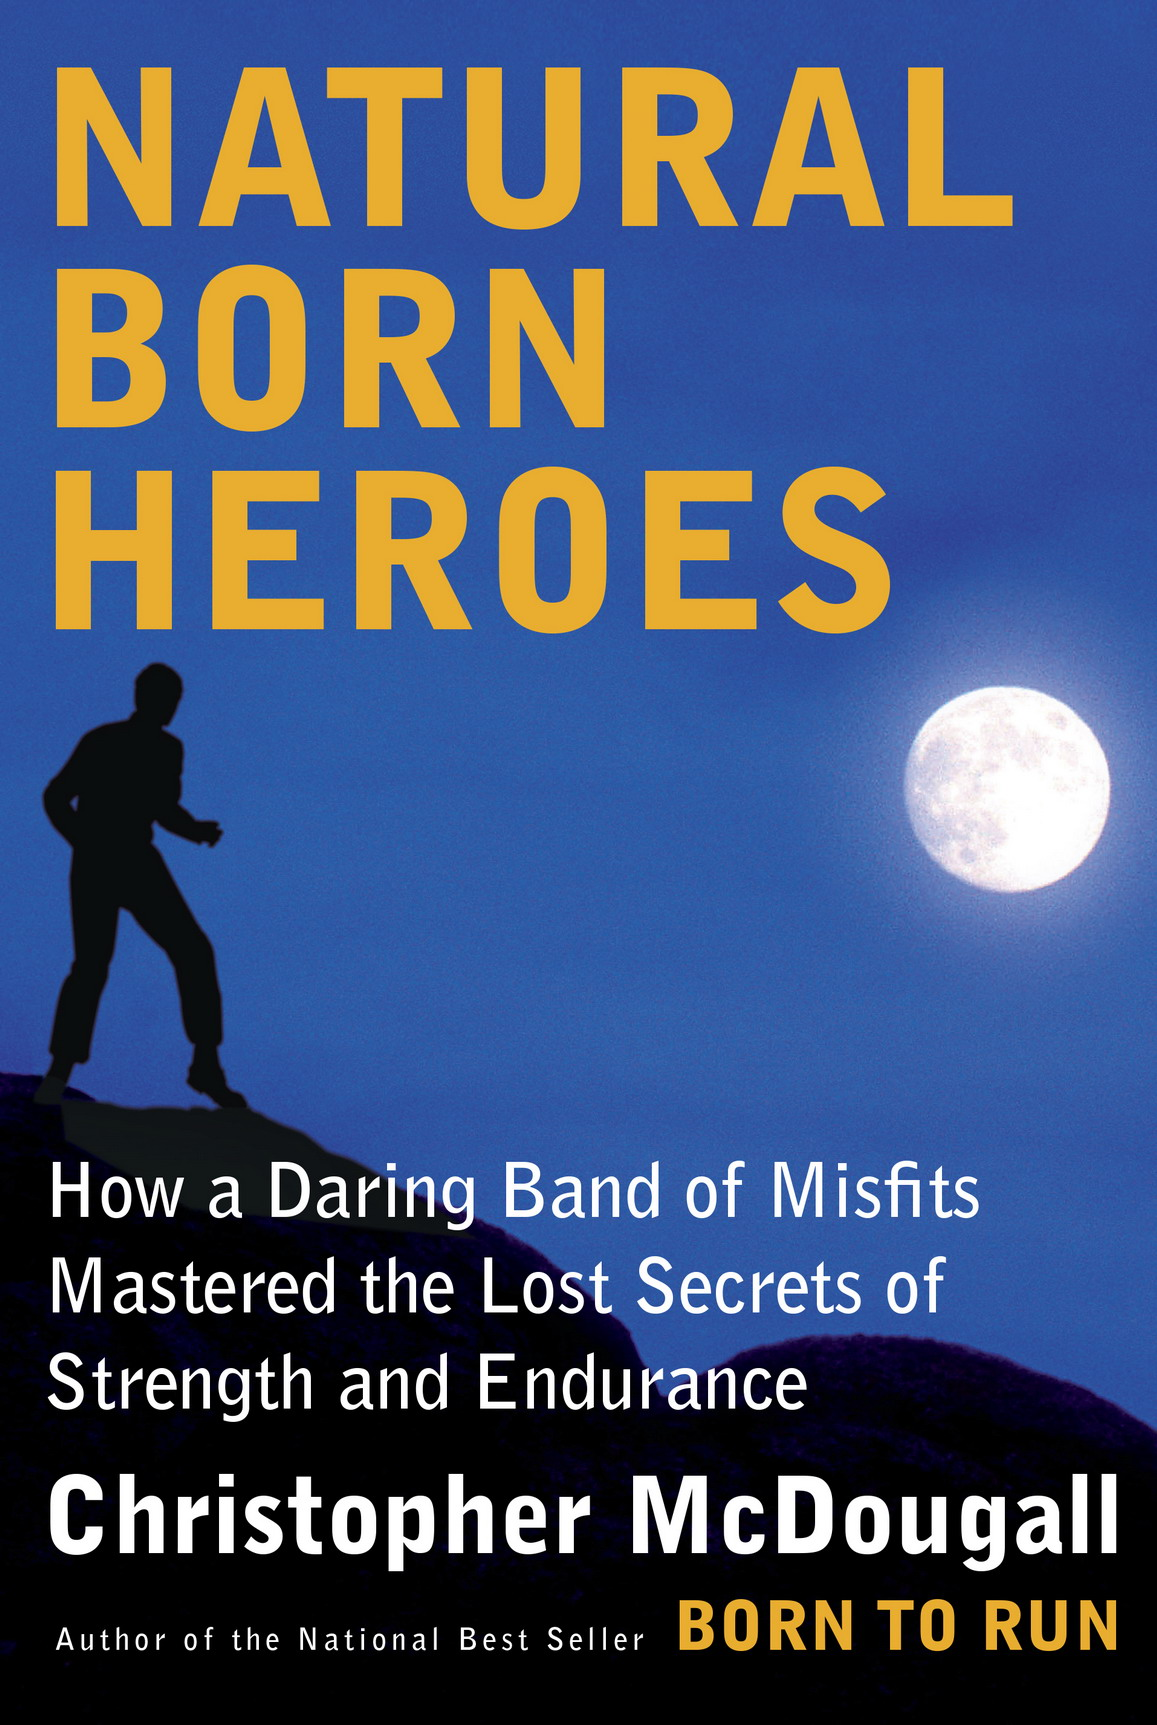 Natural Born Heroes: How a Daring Band of Misfits Mastered the Lost Secrets of Strength and Endurance free download